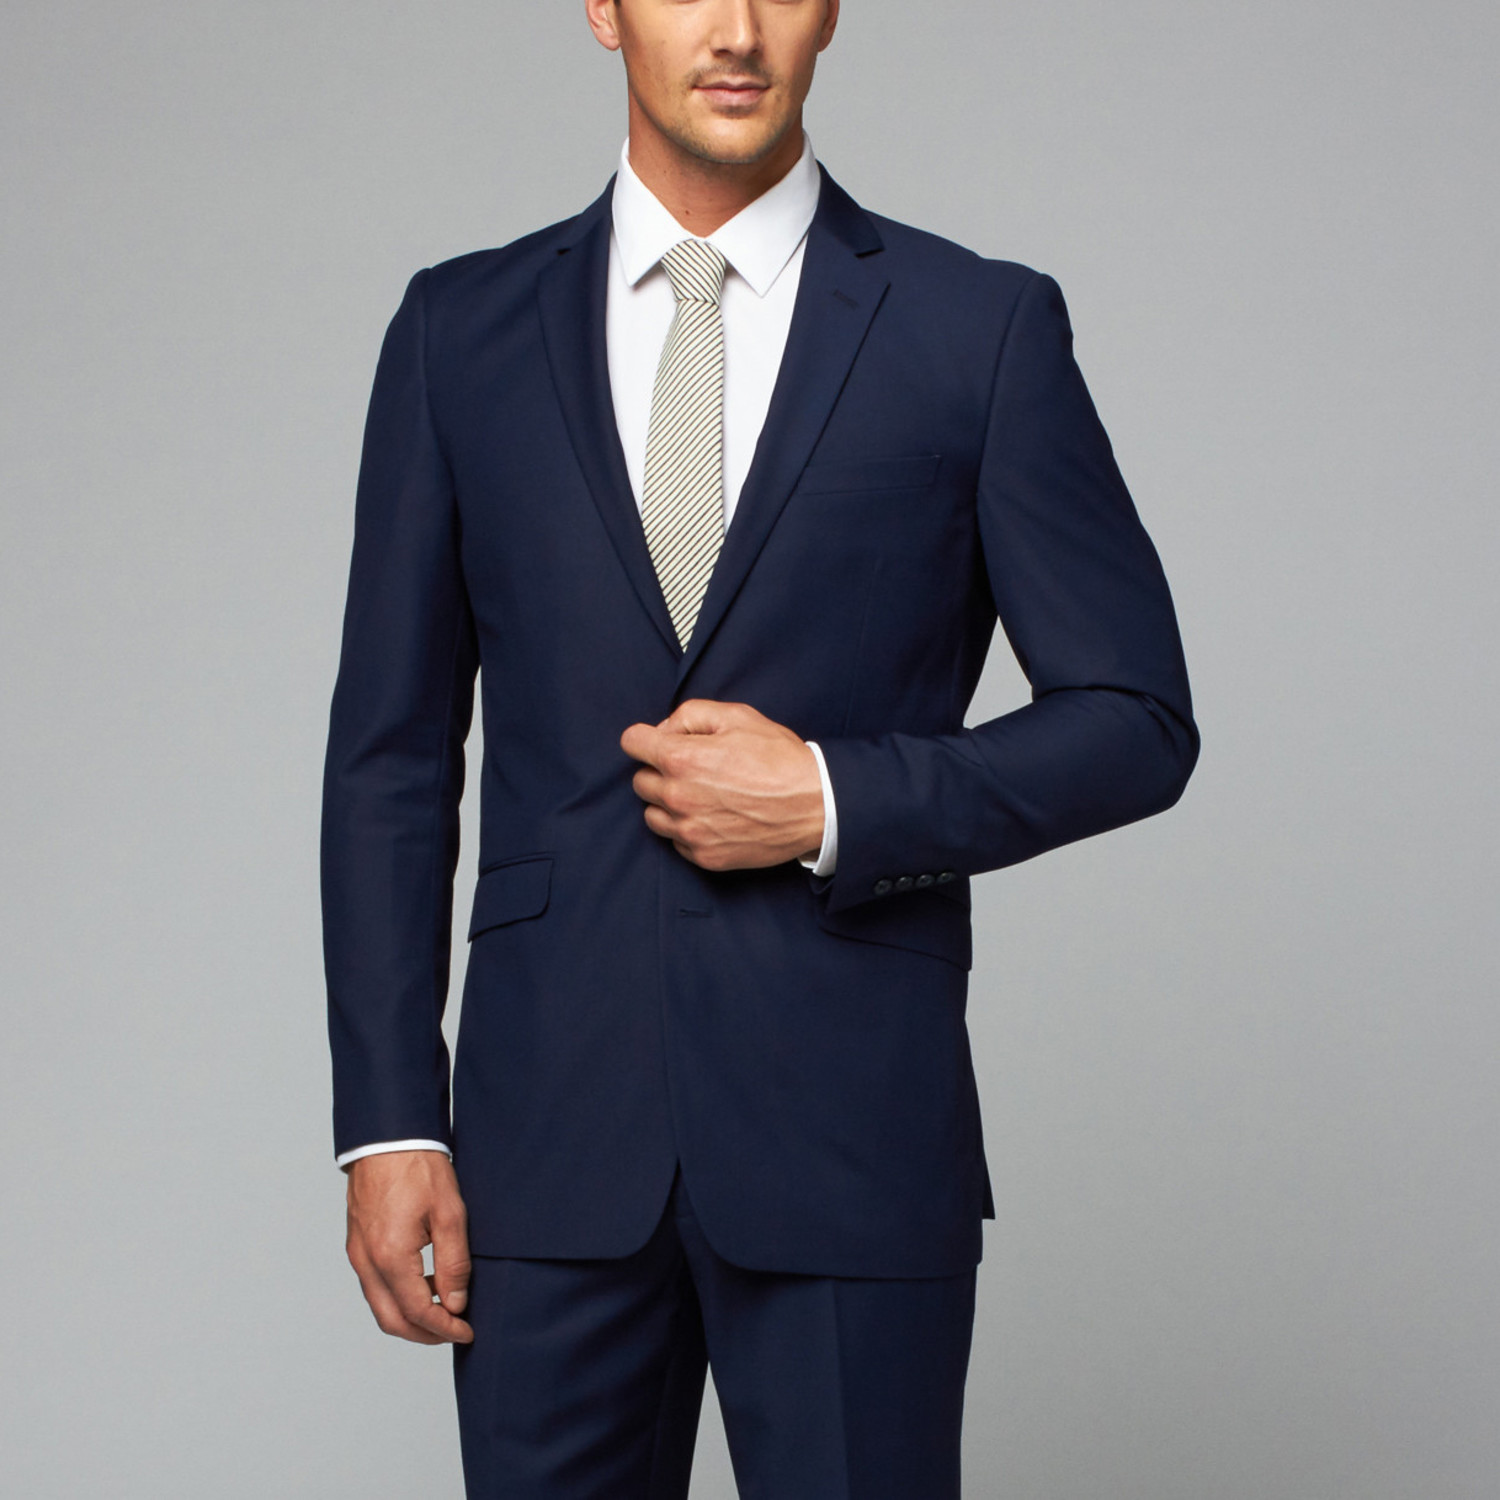 Renoir // 2 Piece Suit Classic Fit Peak // Navy Blue (US: 36R ...